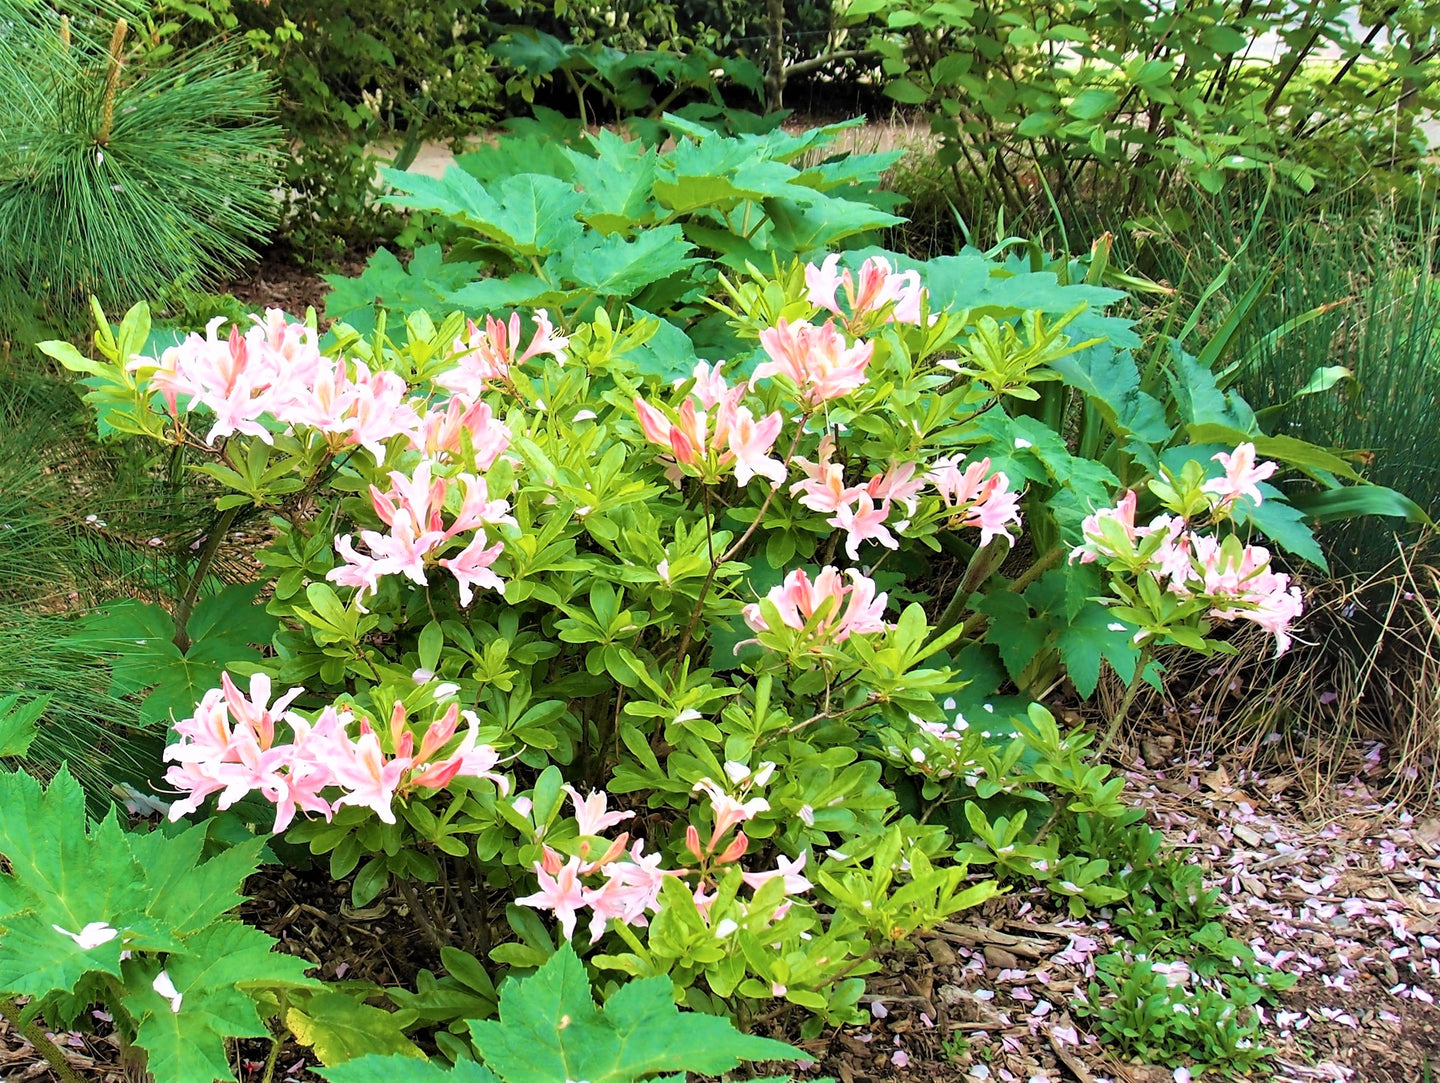 Western Azalea (Rhododendron occidentale) - An exceptionally gorgeous shrub - a true centerpiece in any native garden, particularly in April when it explodes into bloom with five to fifteen, sparkling white or pink, flaring trumpet-shaped flowers per branch, which can be delightfully-scented both sweet and spicy. The foliage emerges a bright shiny green; and graduates to golden yellow, though orange and deep scarlet also occur in autumn.